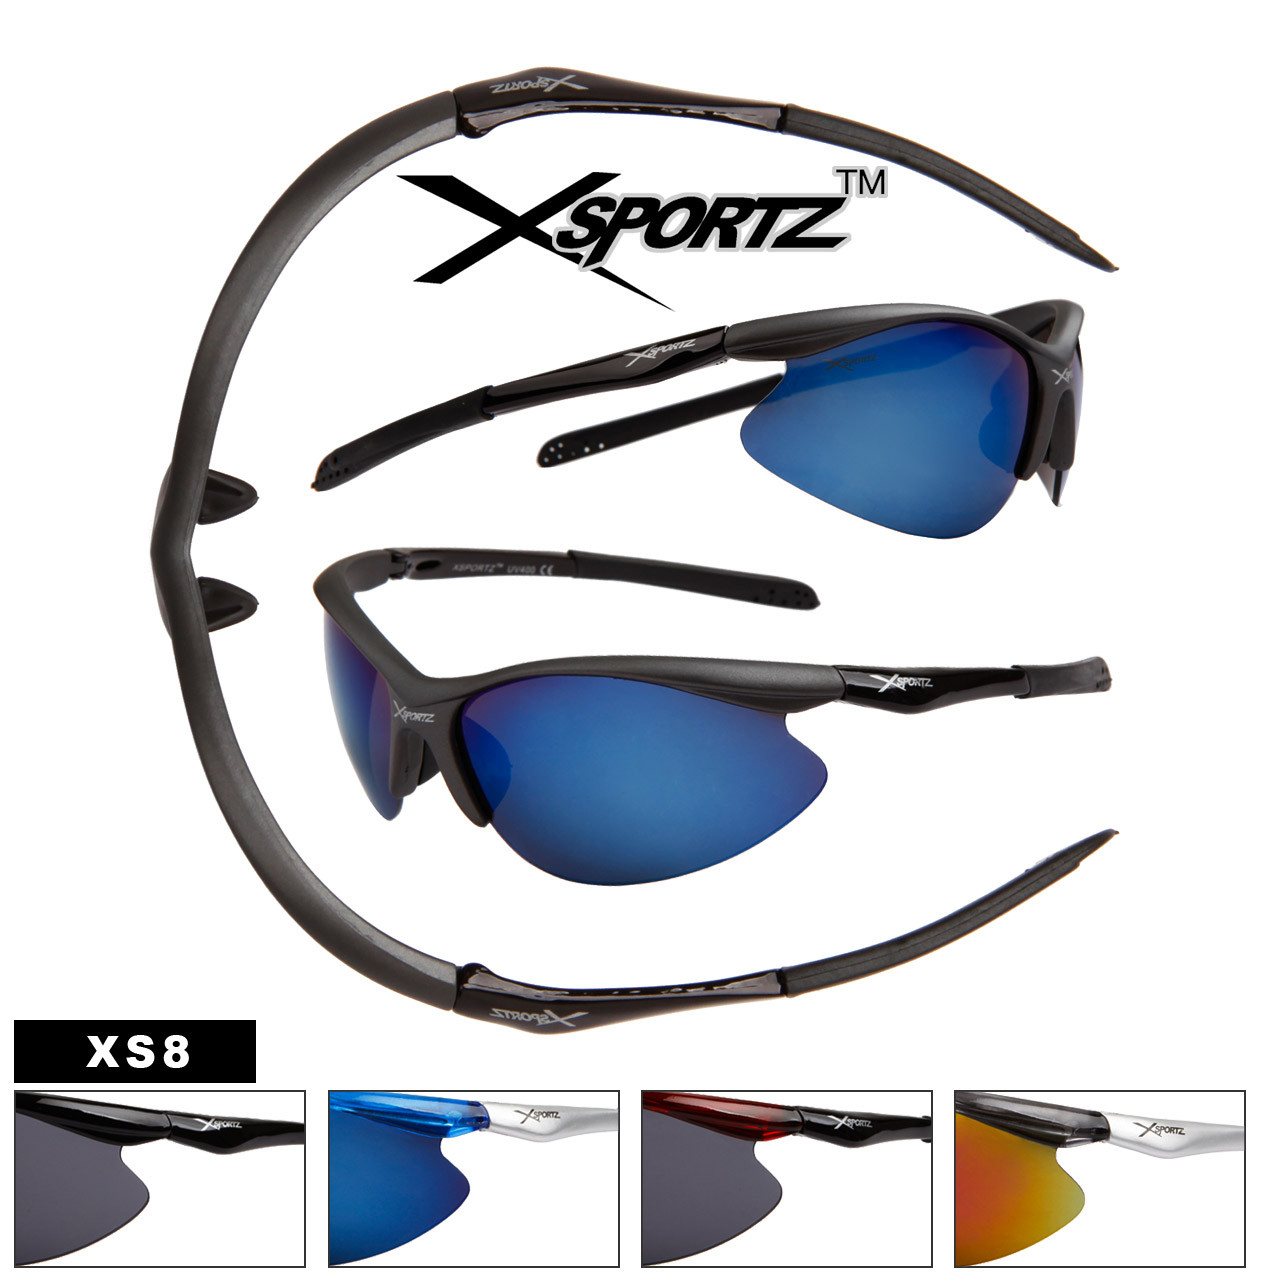 Xsportz™ Sports Sunglasses - Style # XS8